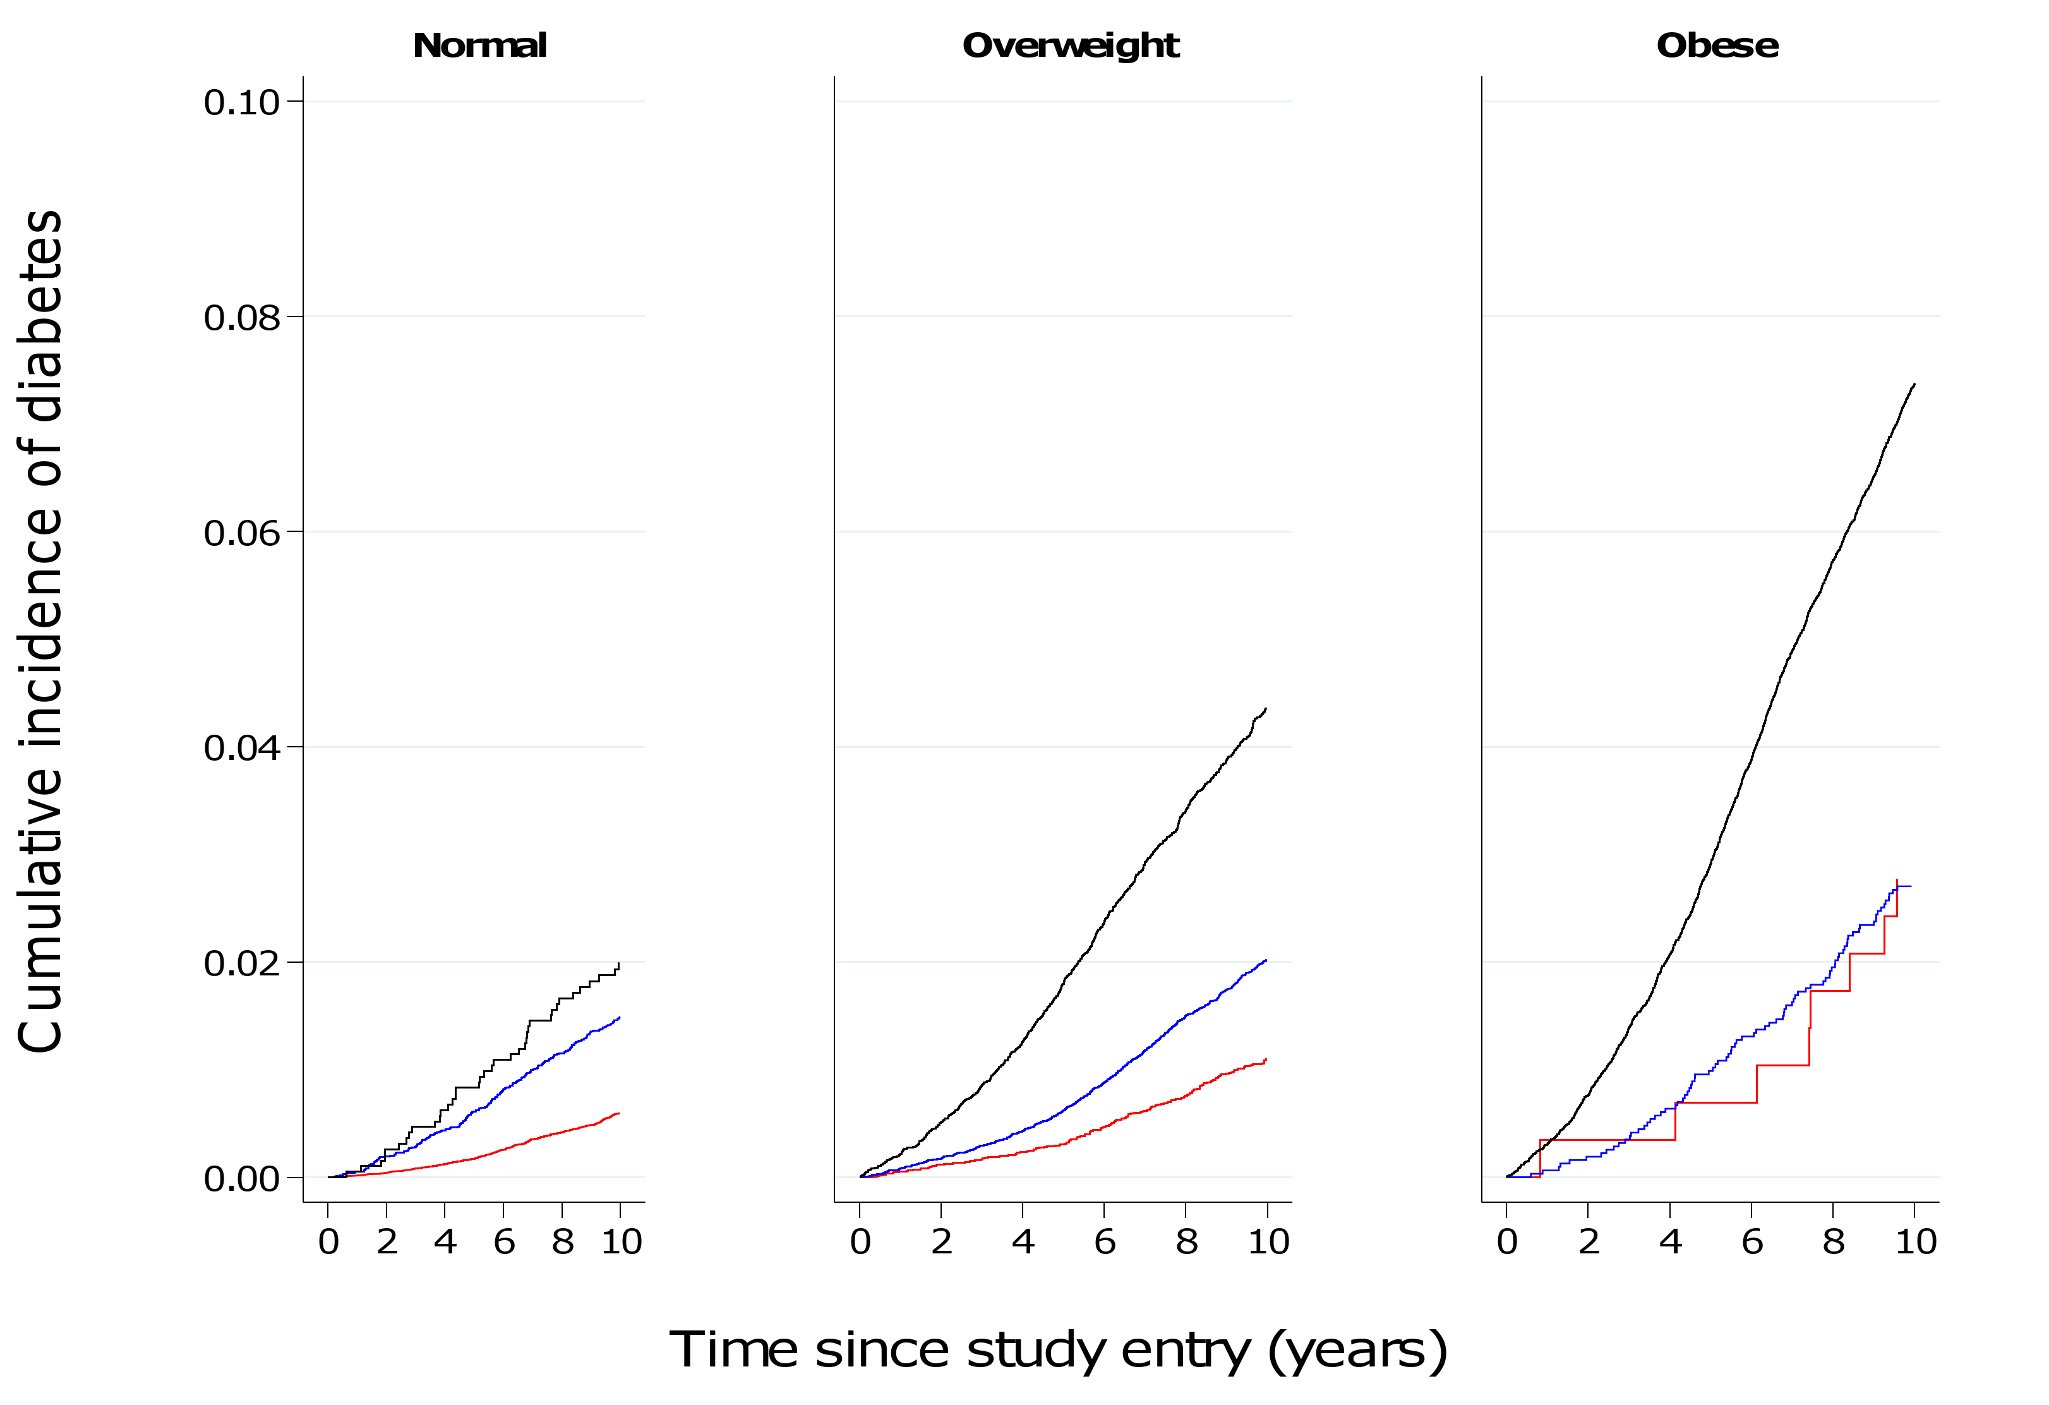 Cumulative incidence of type 2 diabetes over 10 y by BMI and waist circumference groups in women.